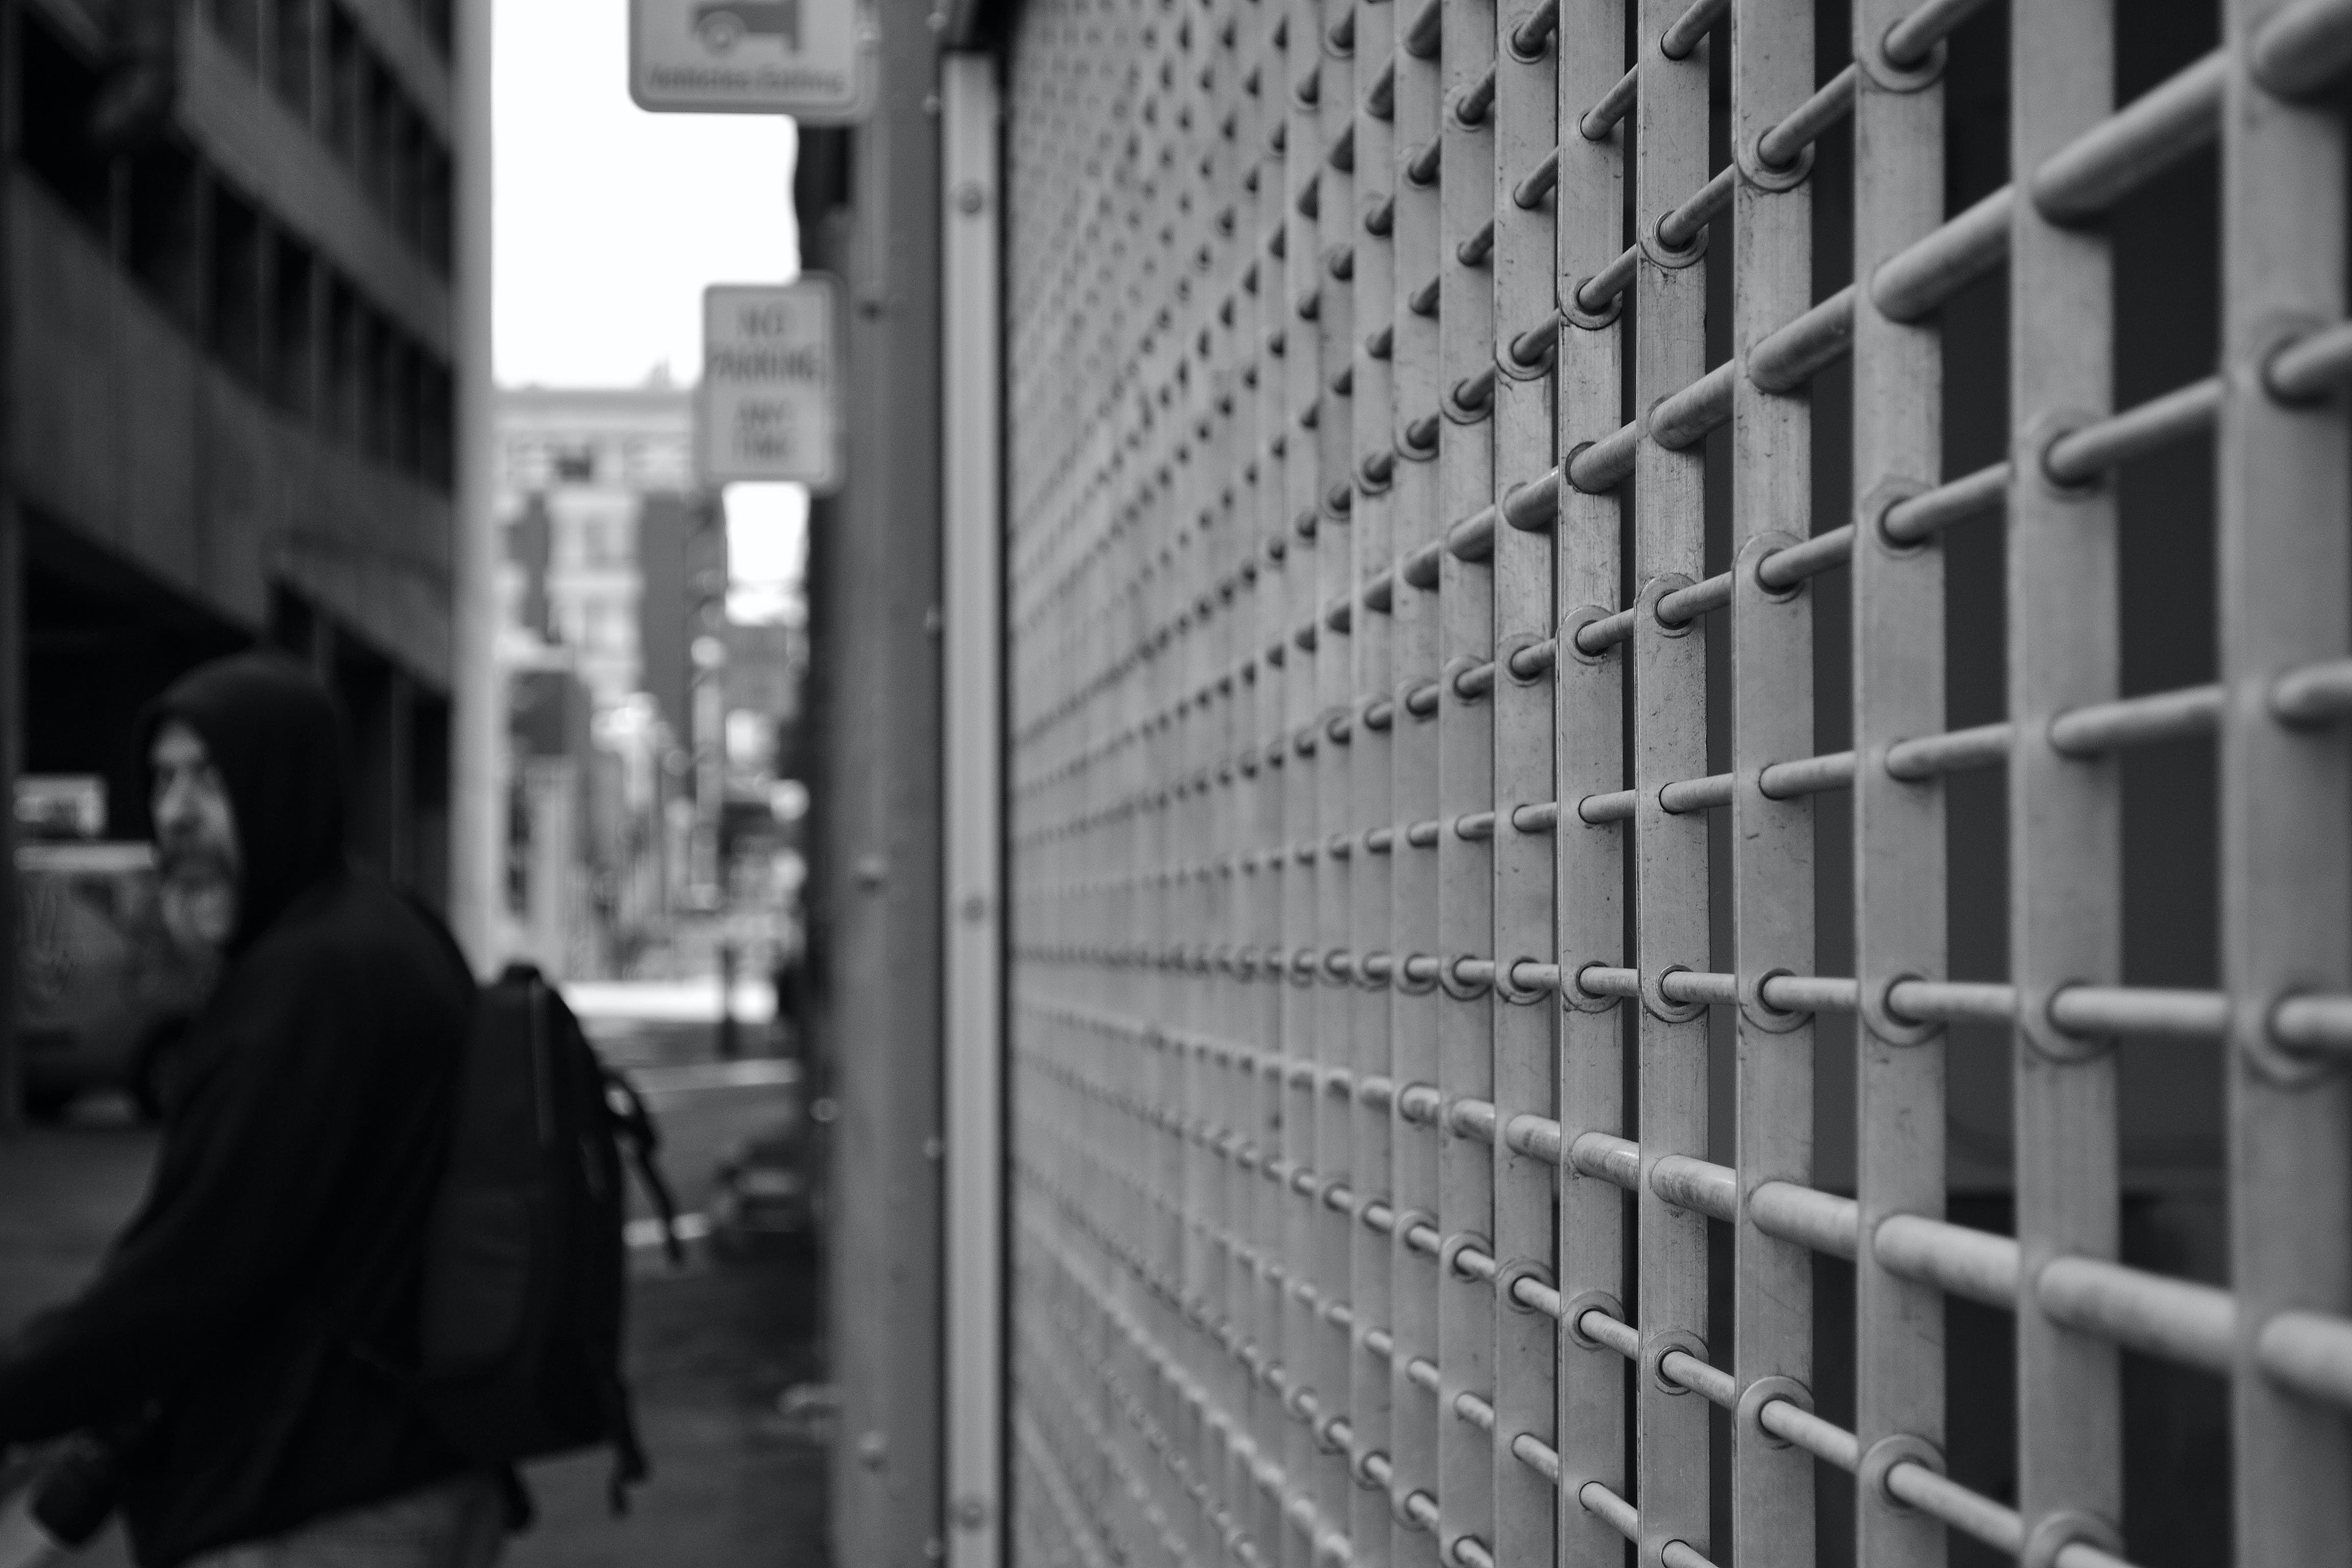 Grayscale Photo of Man in Hoodie in Front of White Window Grill